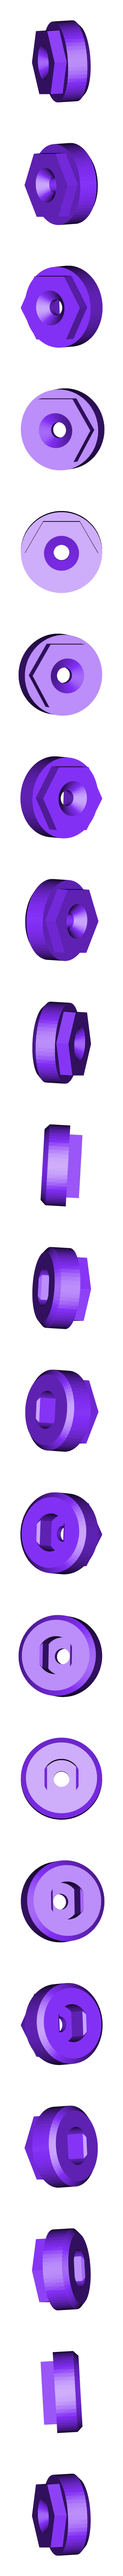 OpenRC_F1_250scaled_-_Wheel_Lock_Nut_v6-1.STL Download free STL file OpenRC F1 250% scaled • Template to 3D print, colorFabb